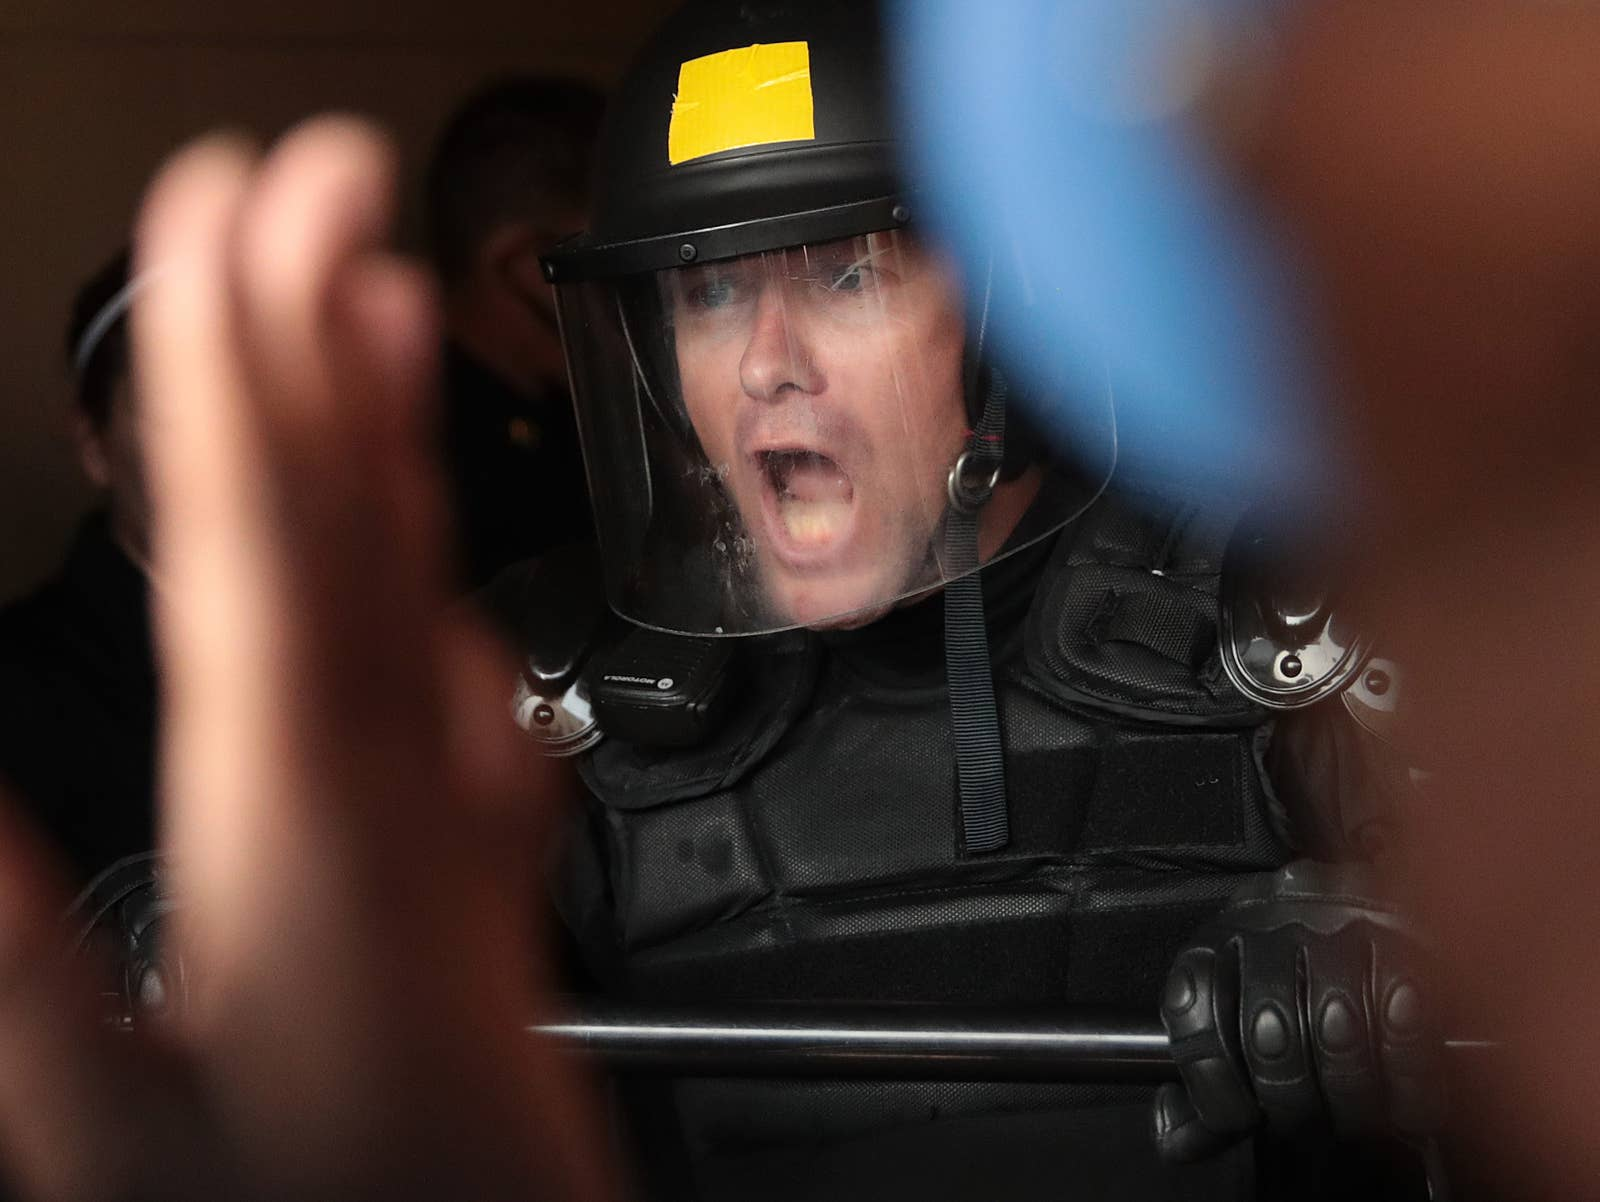 A white police officer in riot gear and a face shield yells